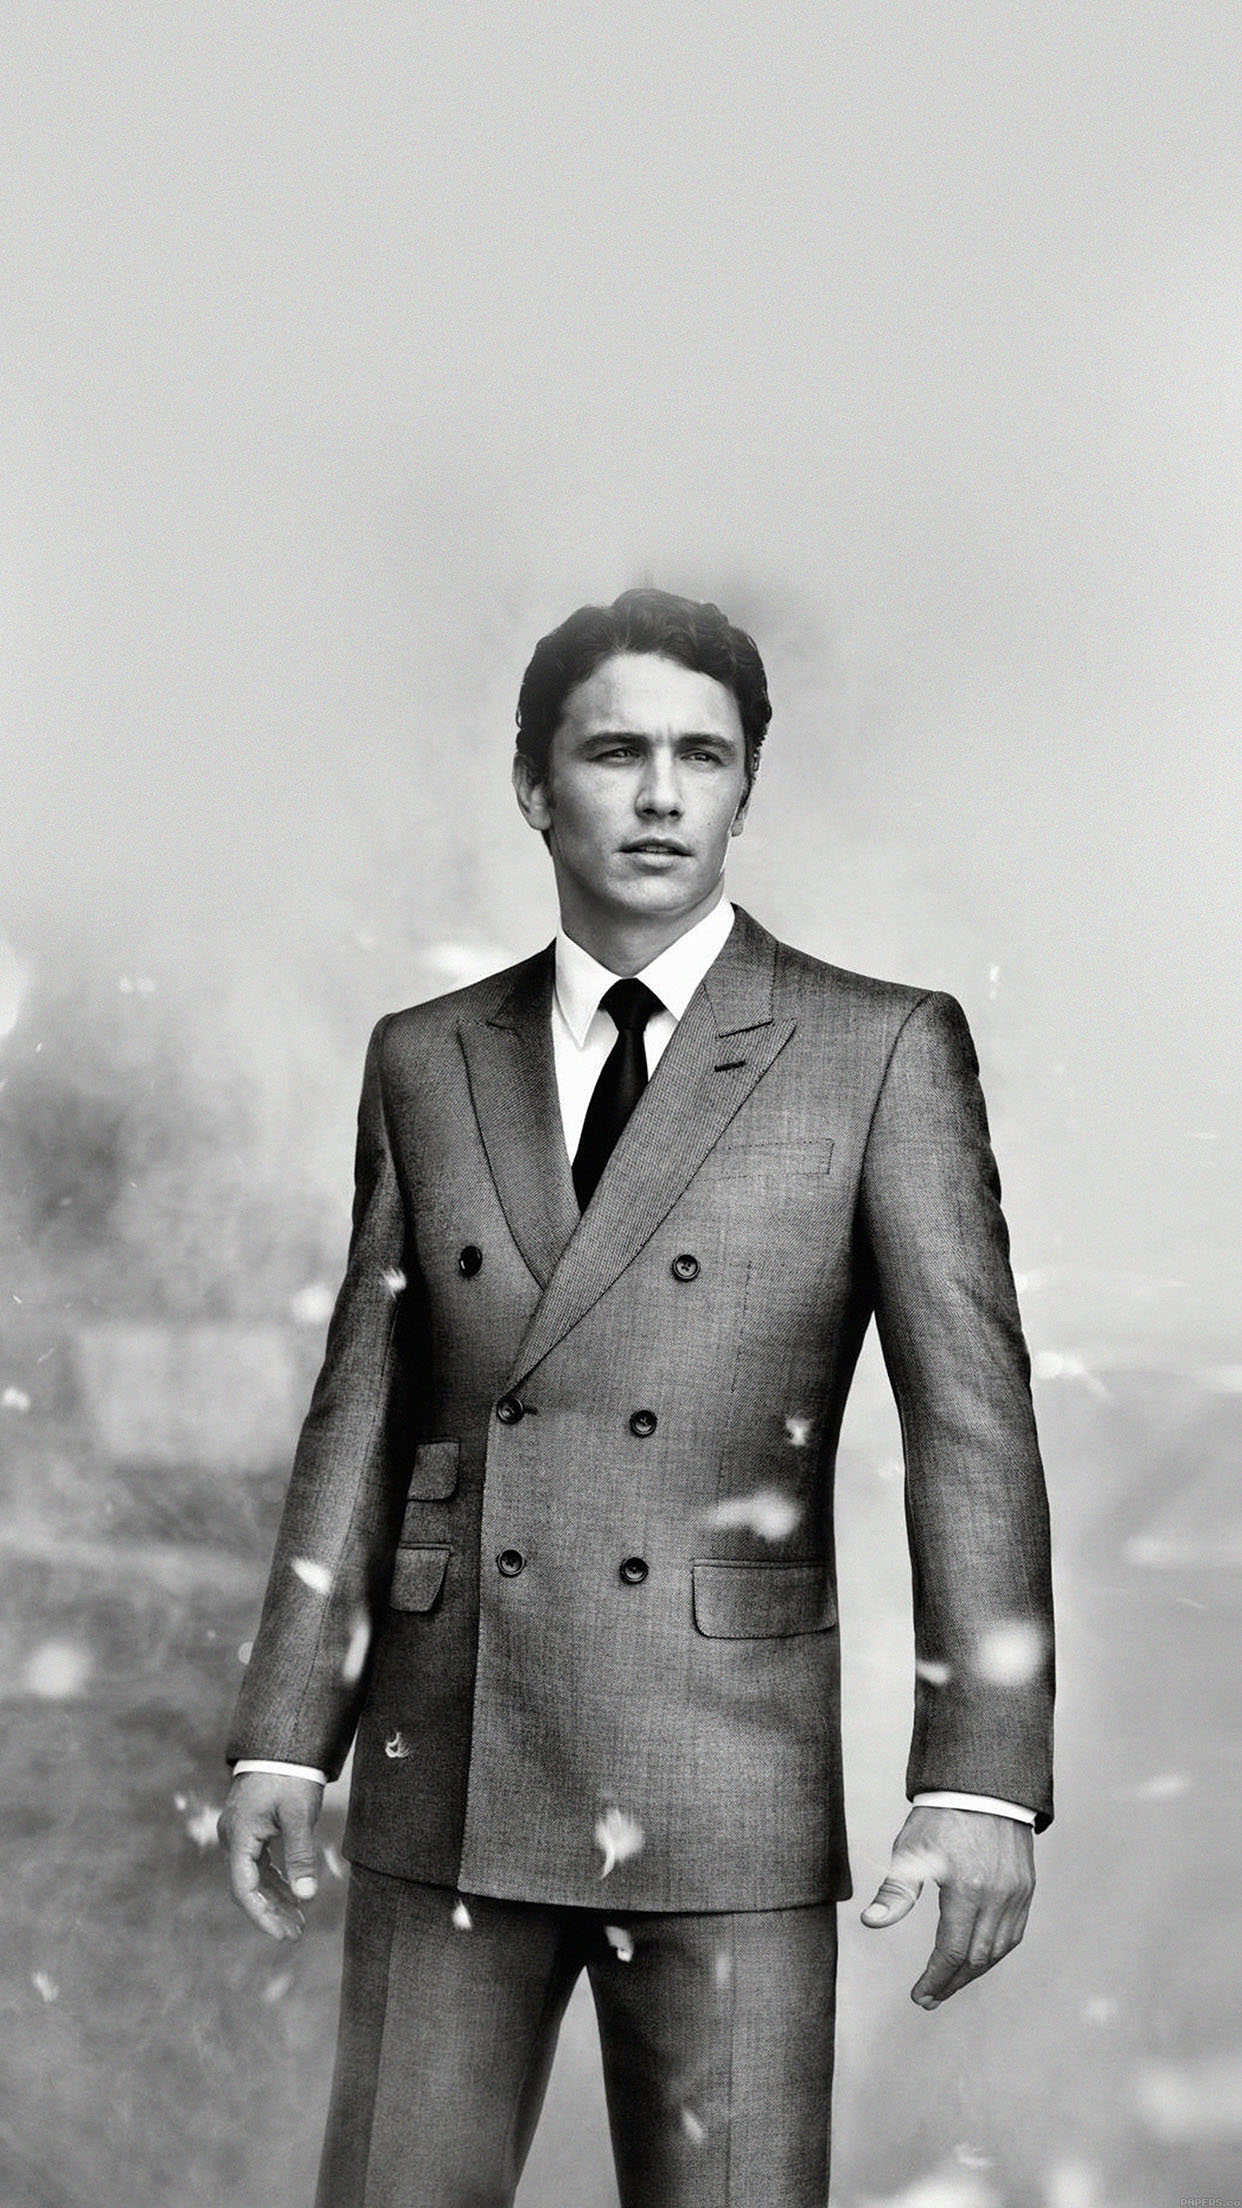 iphone6papers - hb10-wallpaper-james-franco-actor-sexy-man